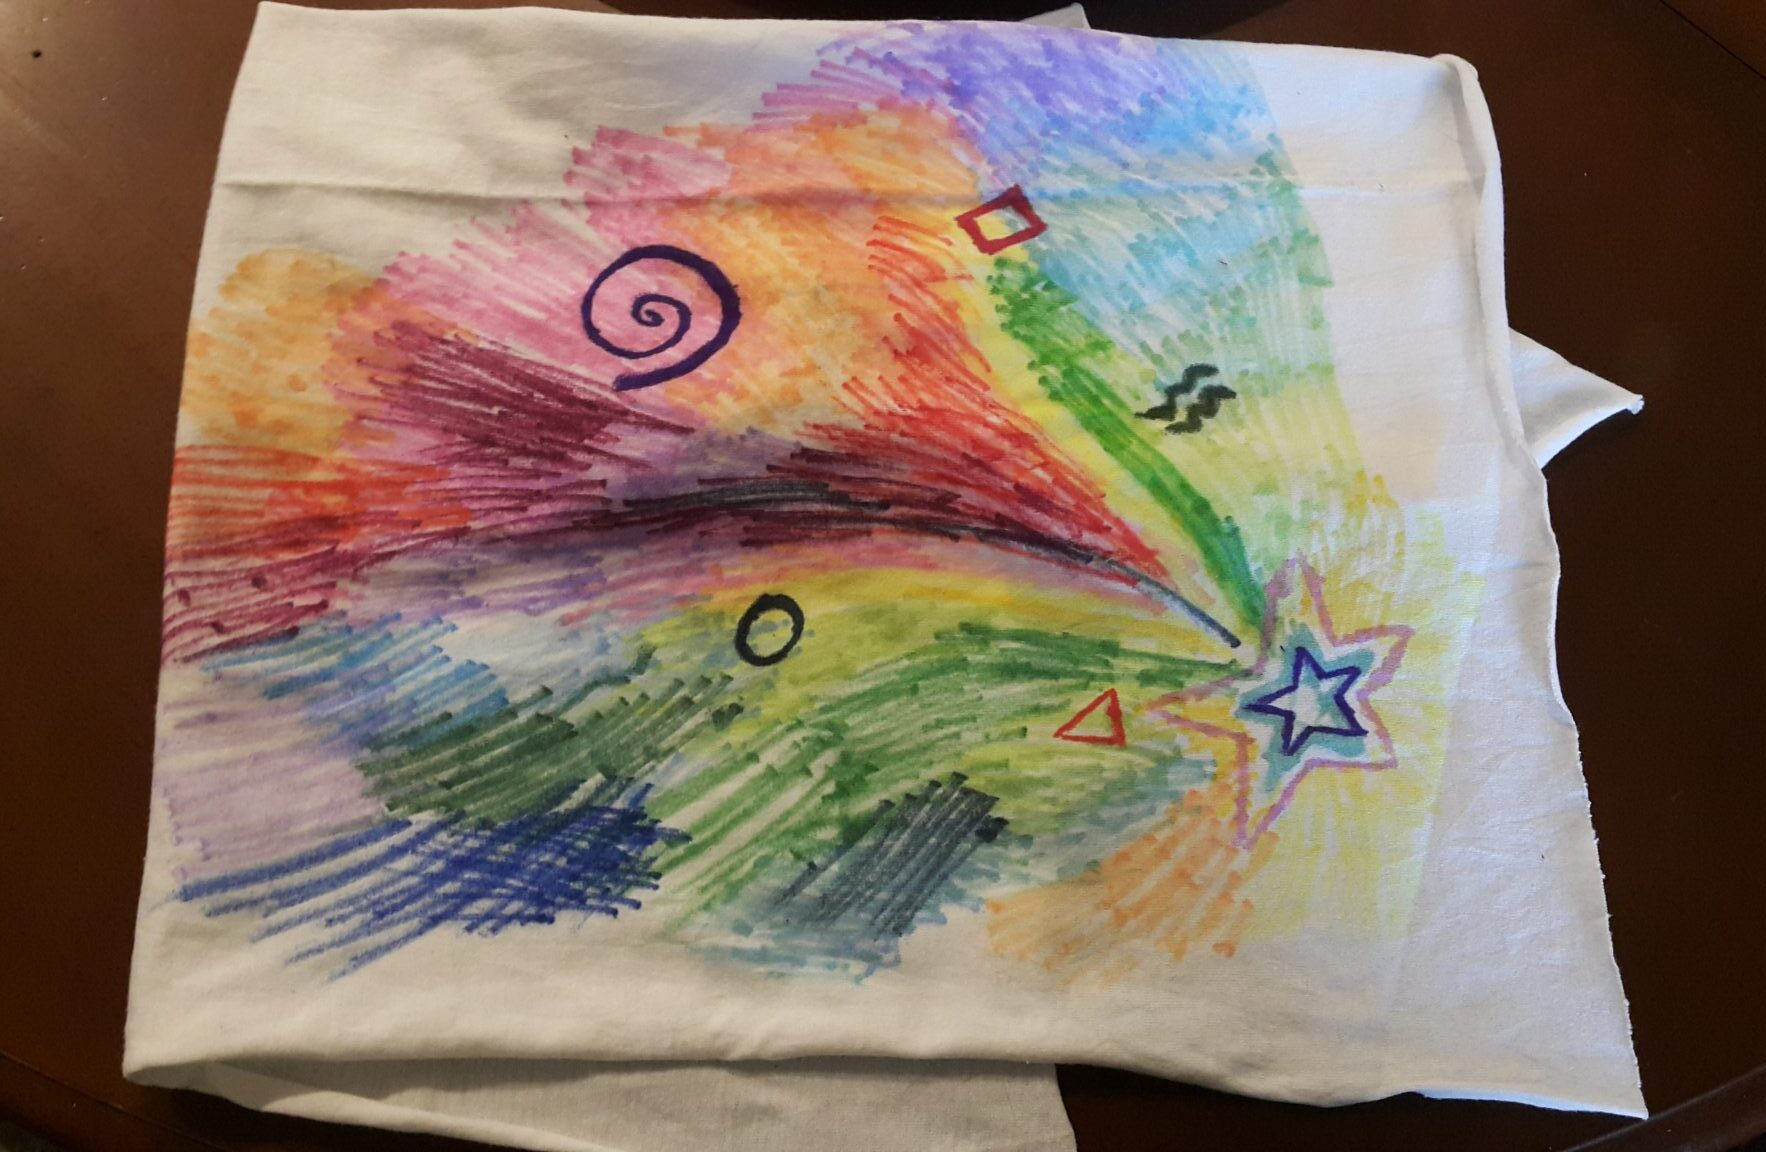 Tie-Dye Effect Painting with Markers